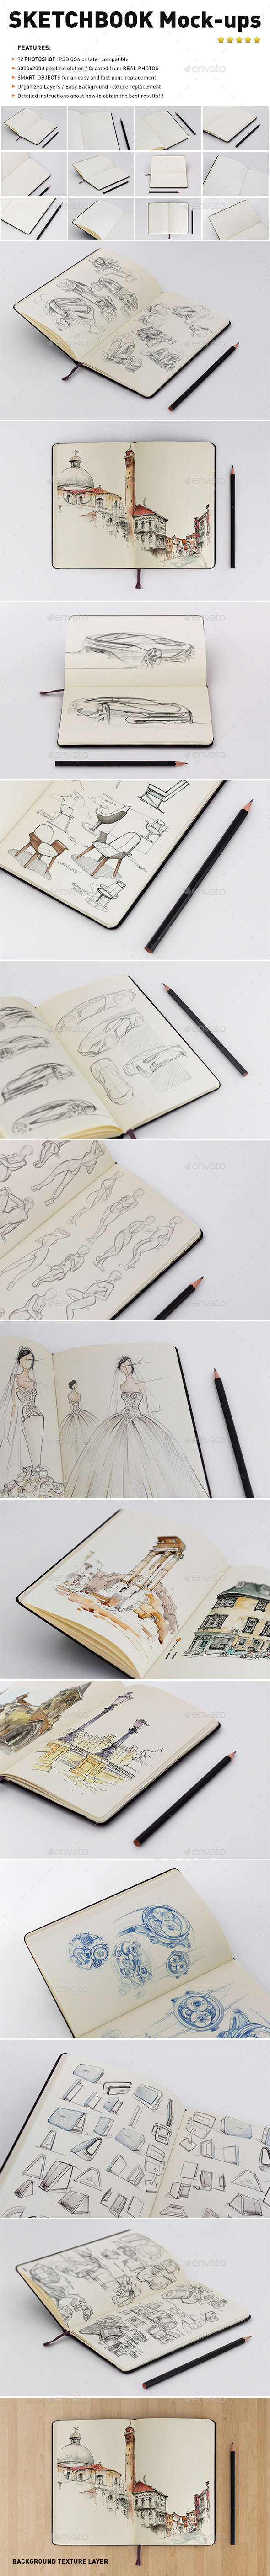 Photorealistic Sketch Book Mockups - Product Mock-Ups Graphics